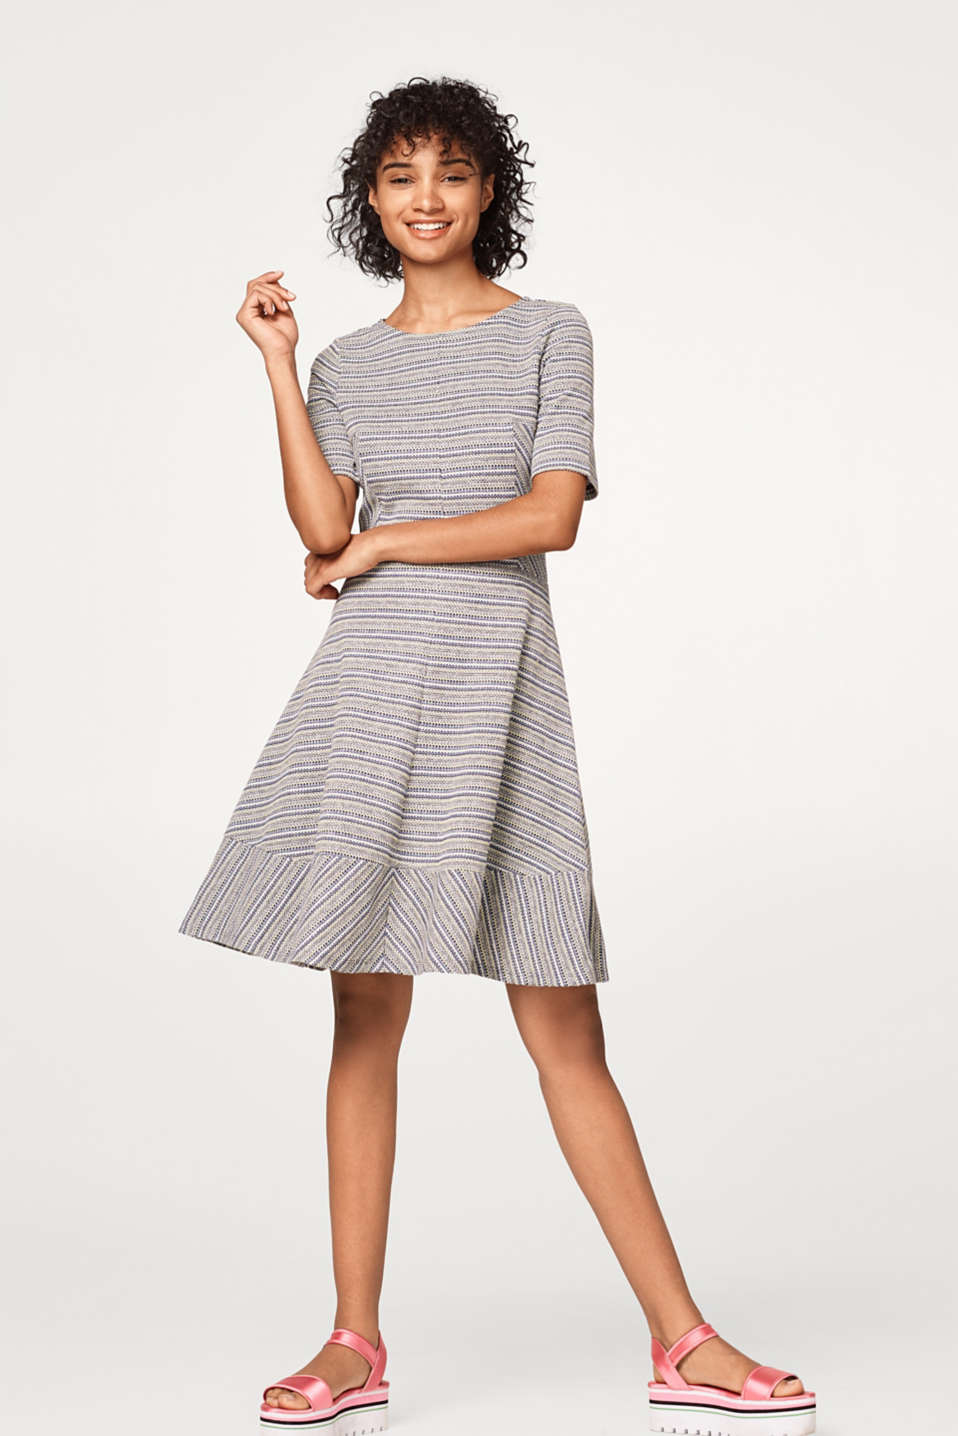 A-line dress with patterned stripes